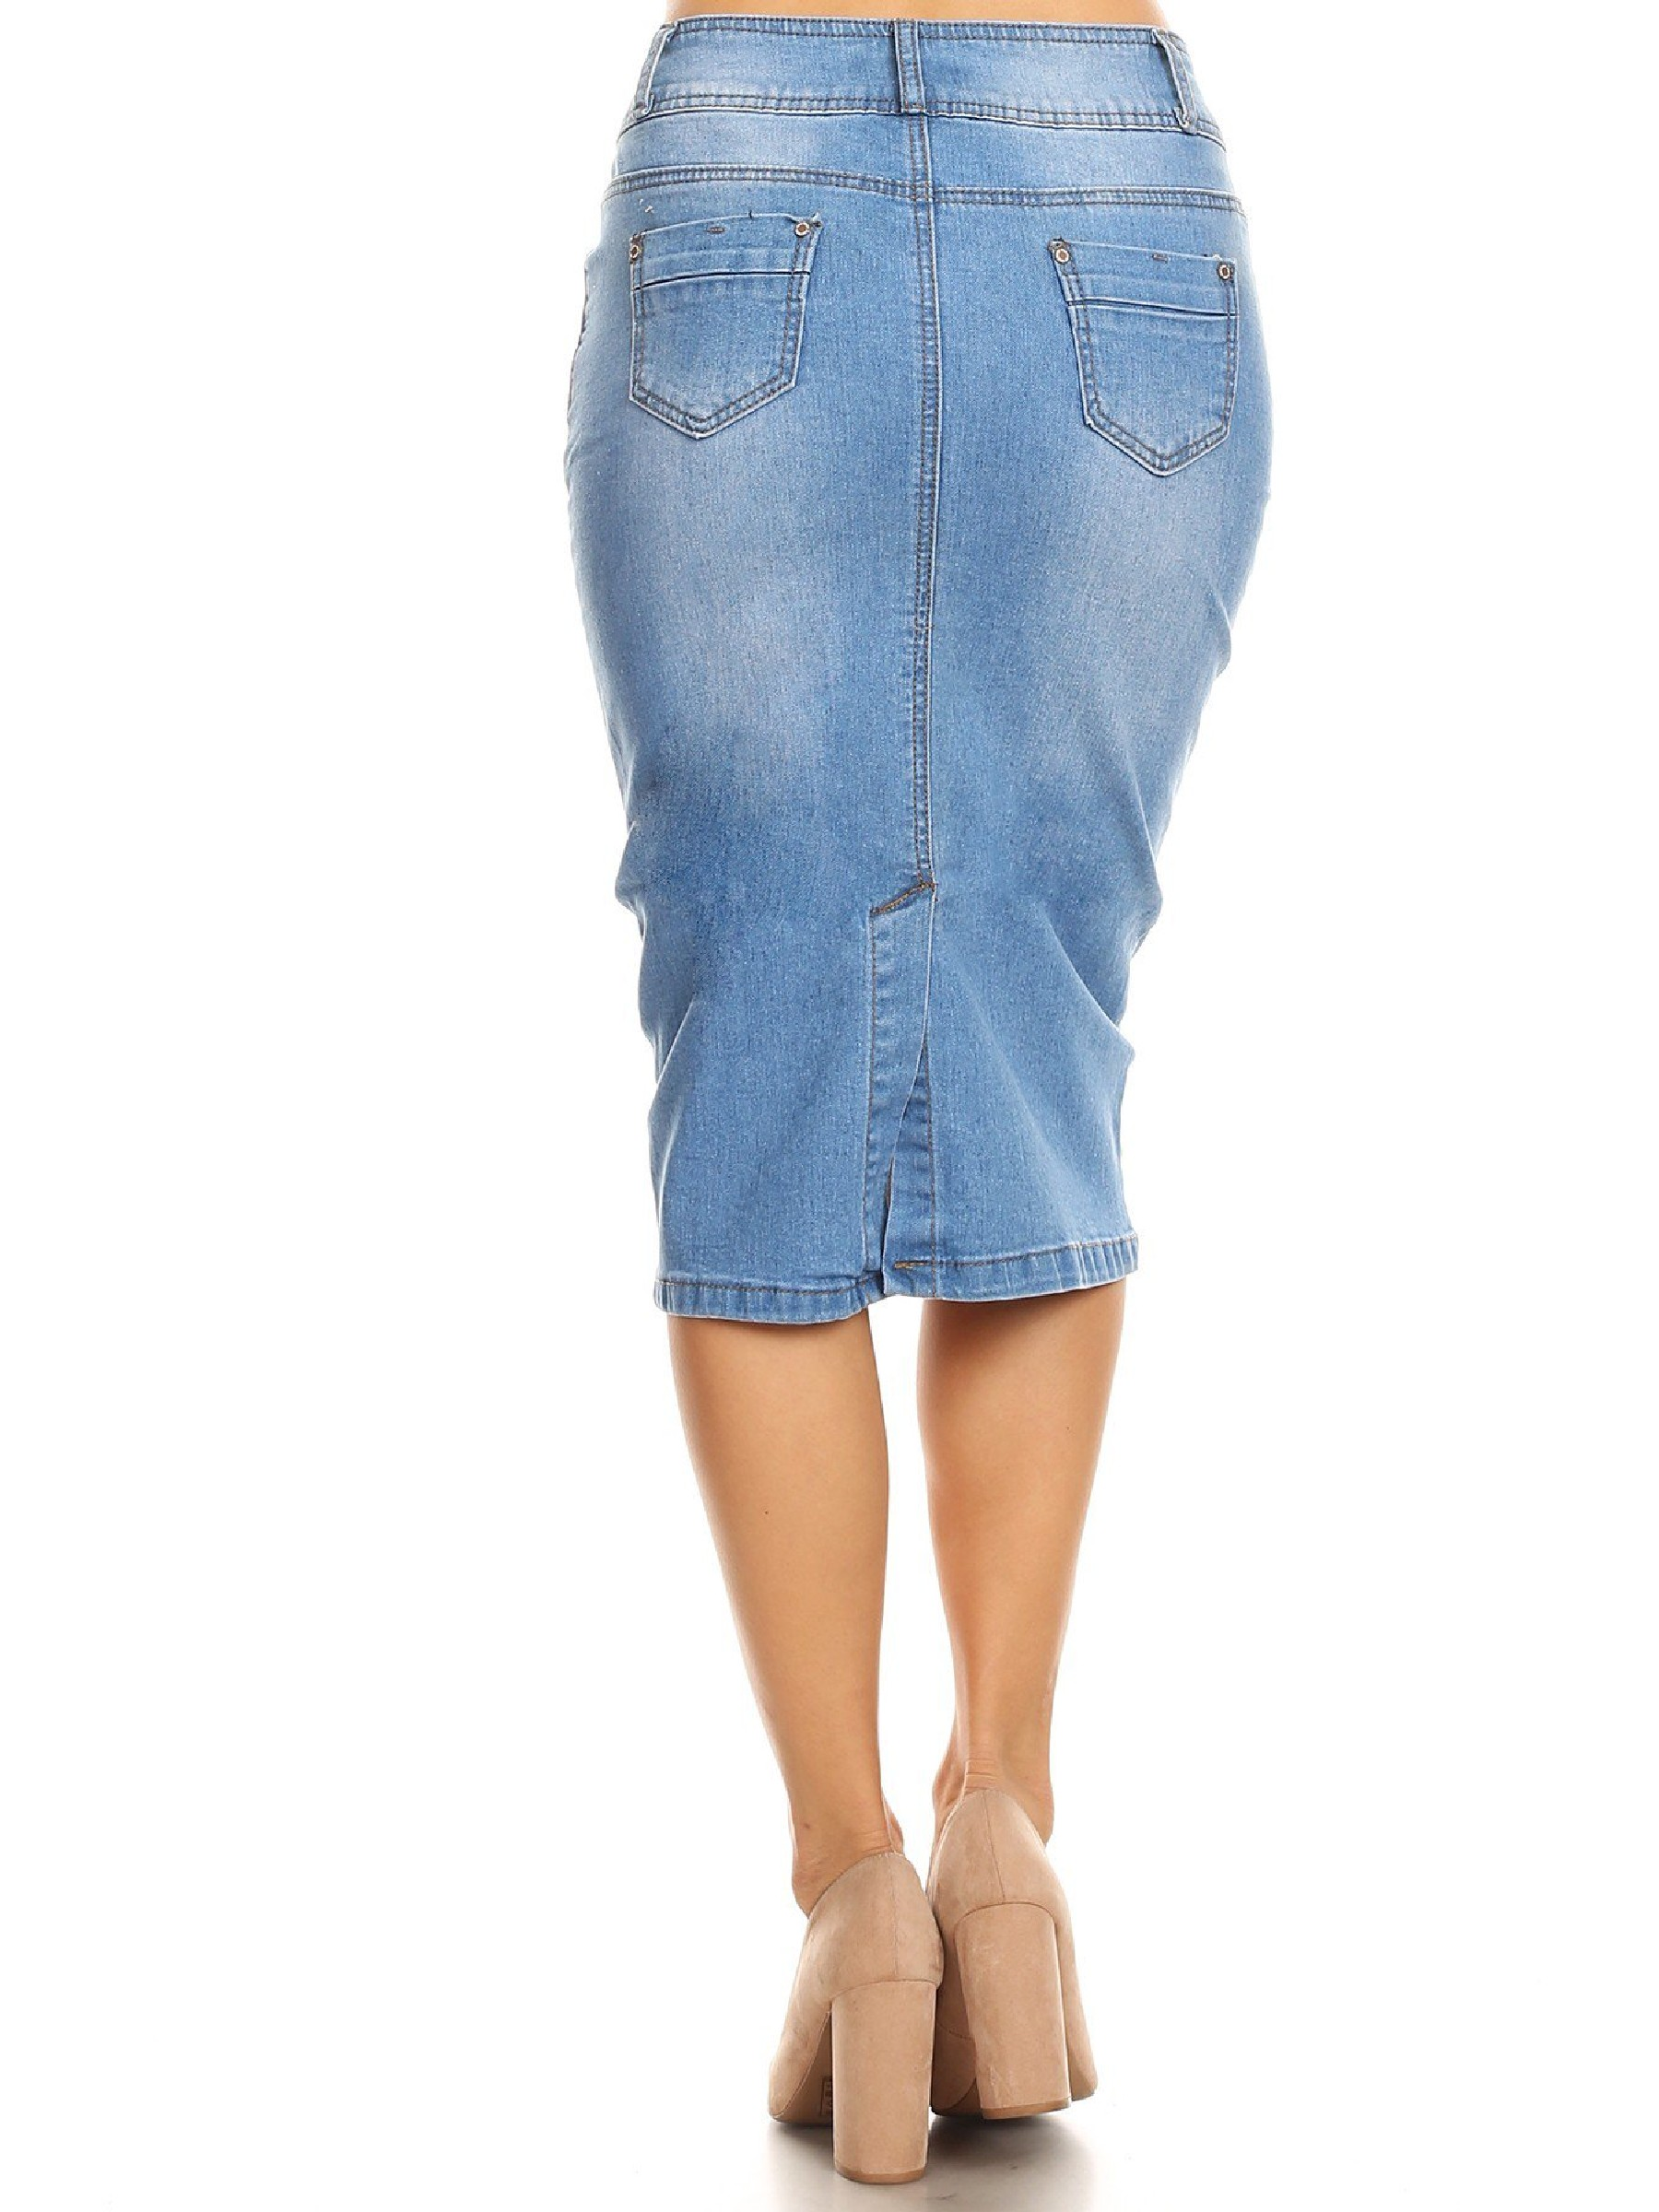 13ea035d0 Fashion2love - Womens Plus/Juniors Mid Waist Below Knee Length Denim Skirt  in Pencil Silhouette - Walmart.com